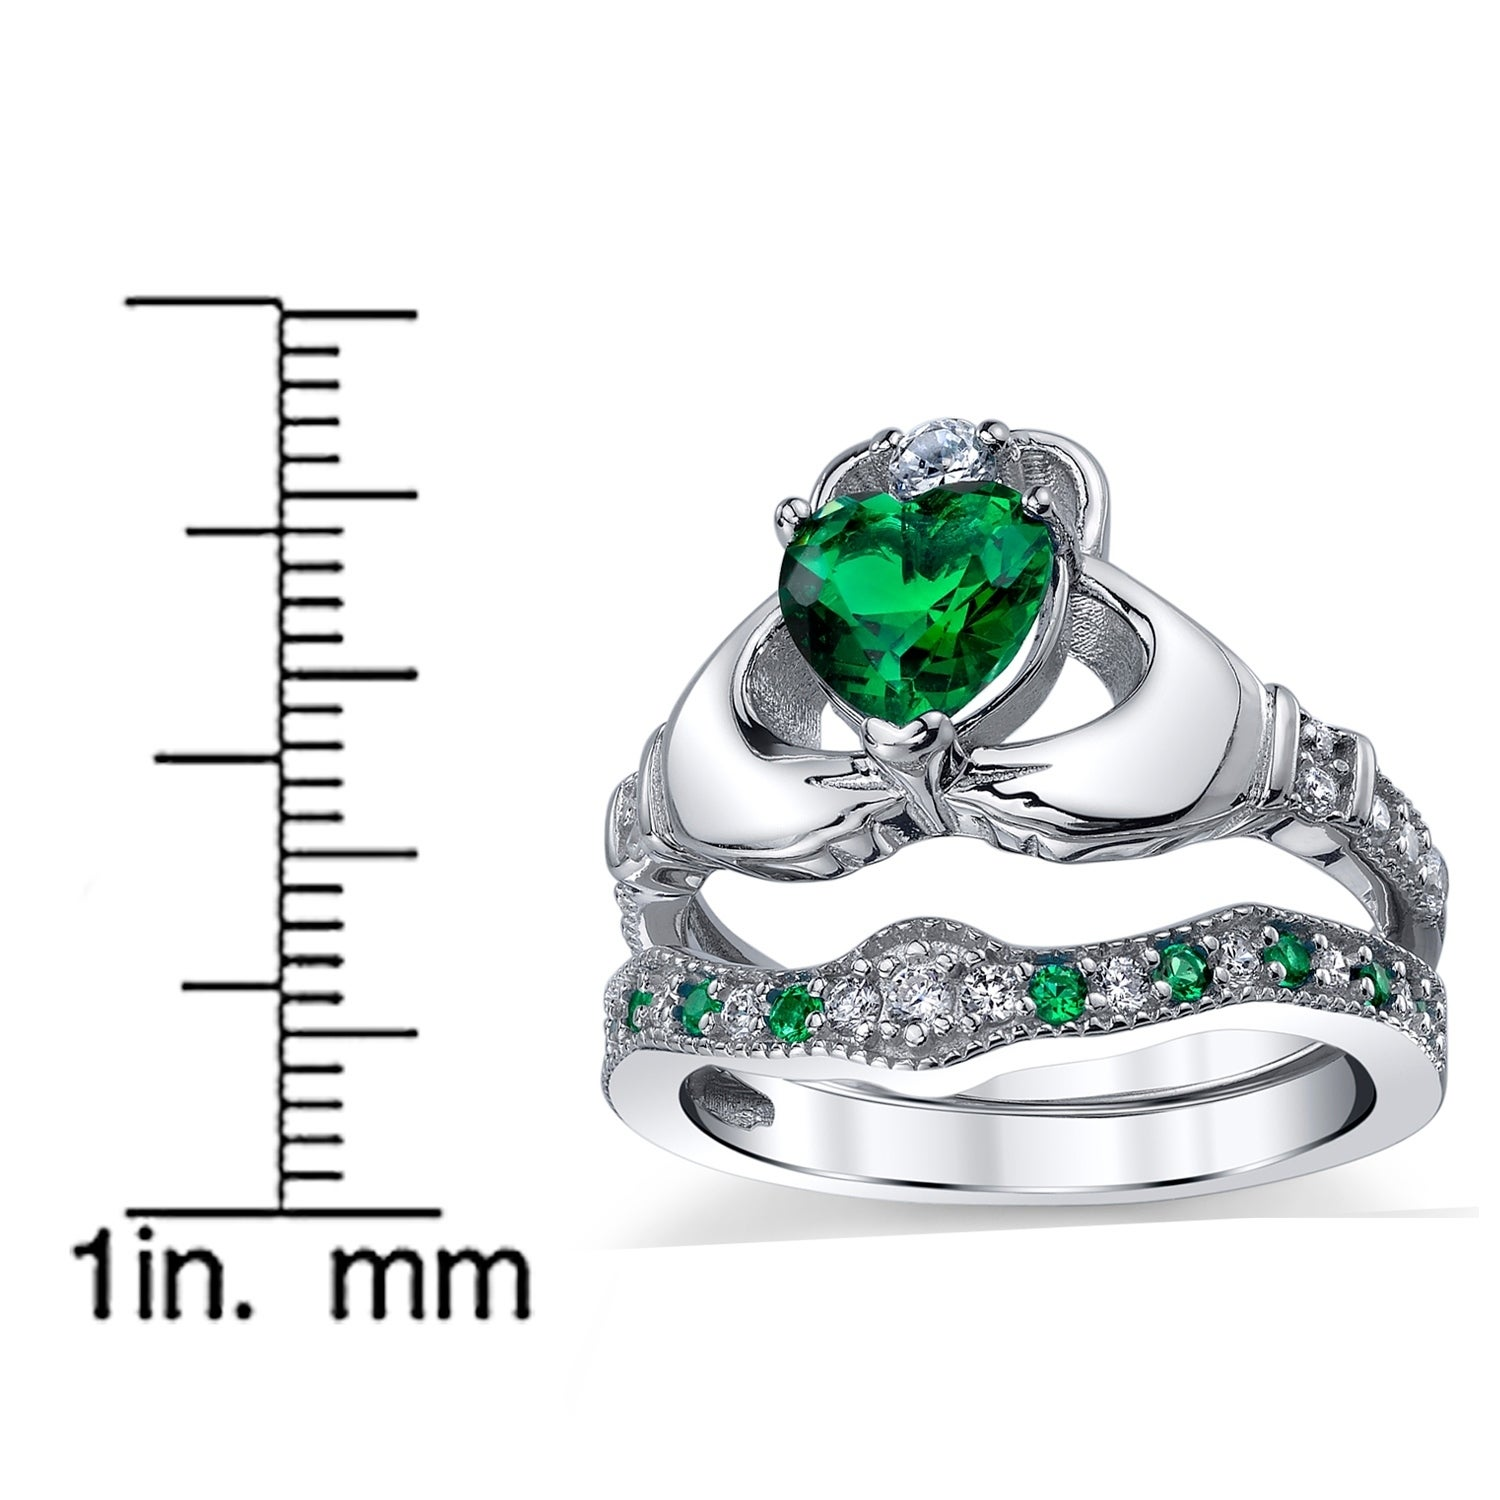 f1183741e65bc Oliveti Sterling Silver Claddagh Engagement Ring Bridal Sets Simulated  Emerald Cubic Zirconia - Green